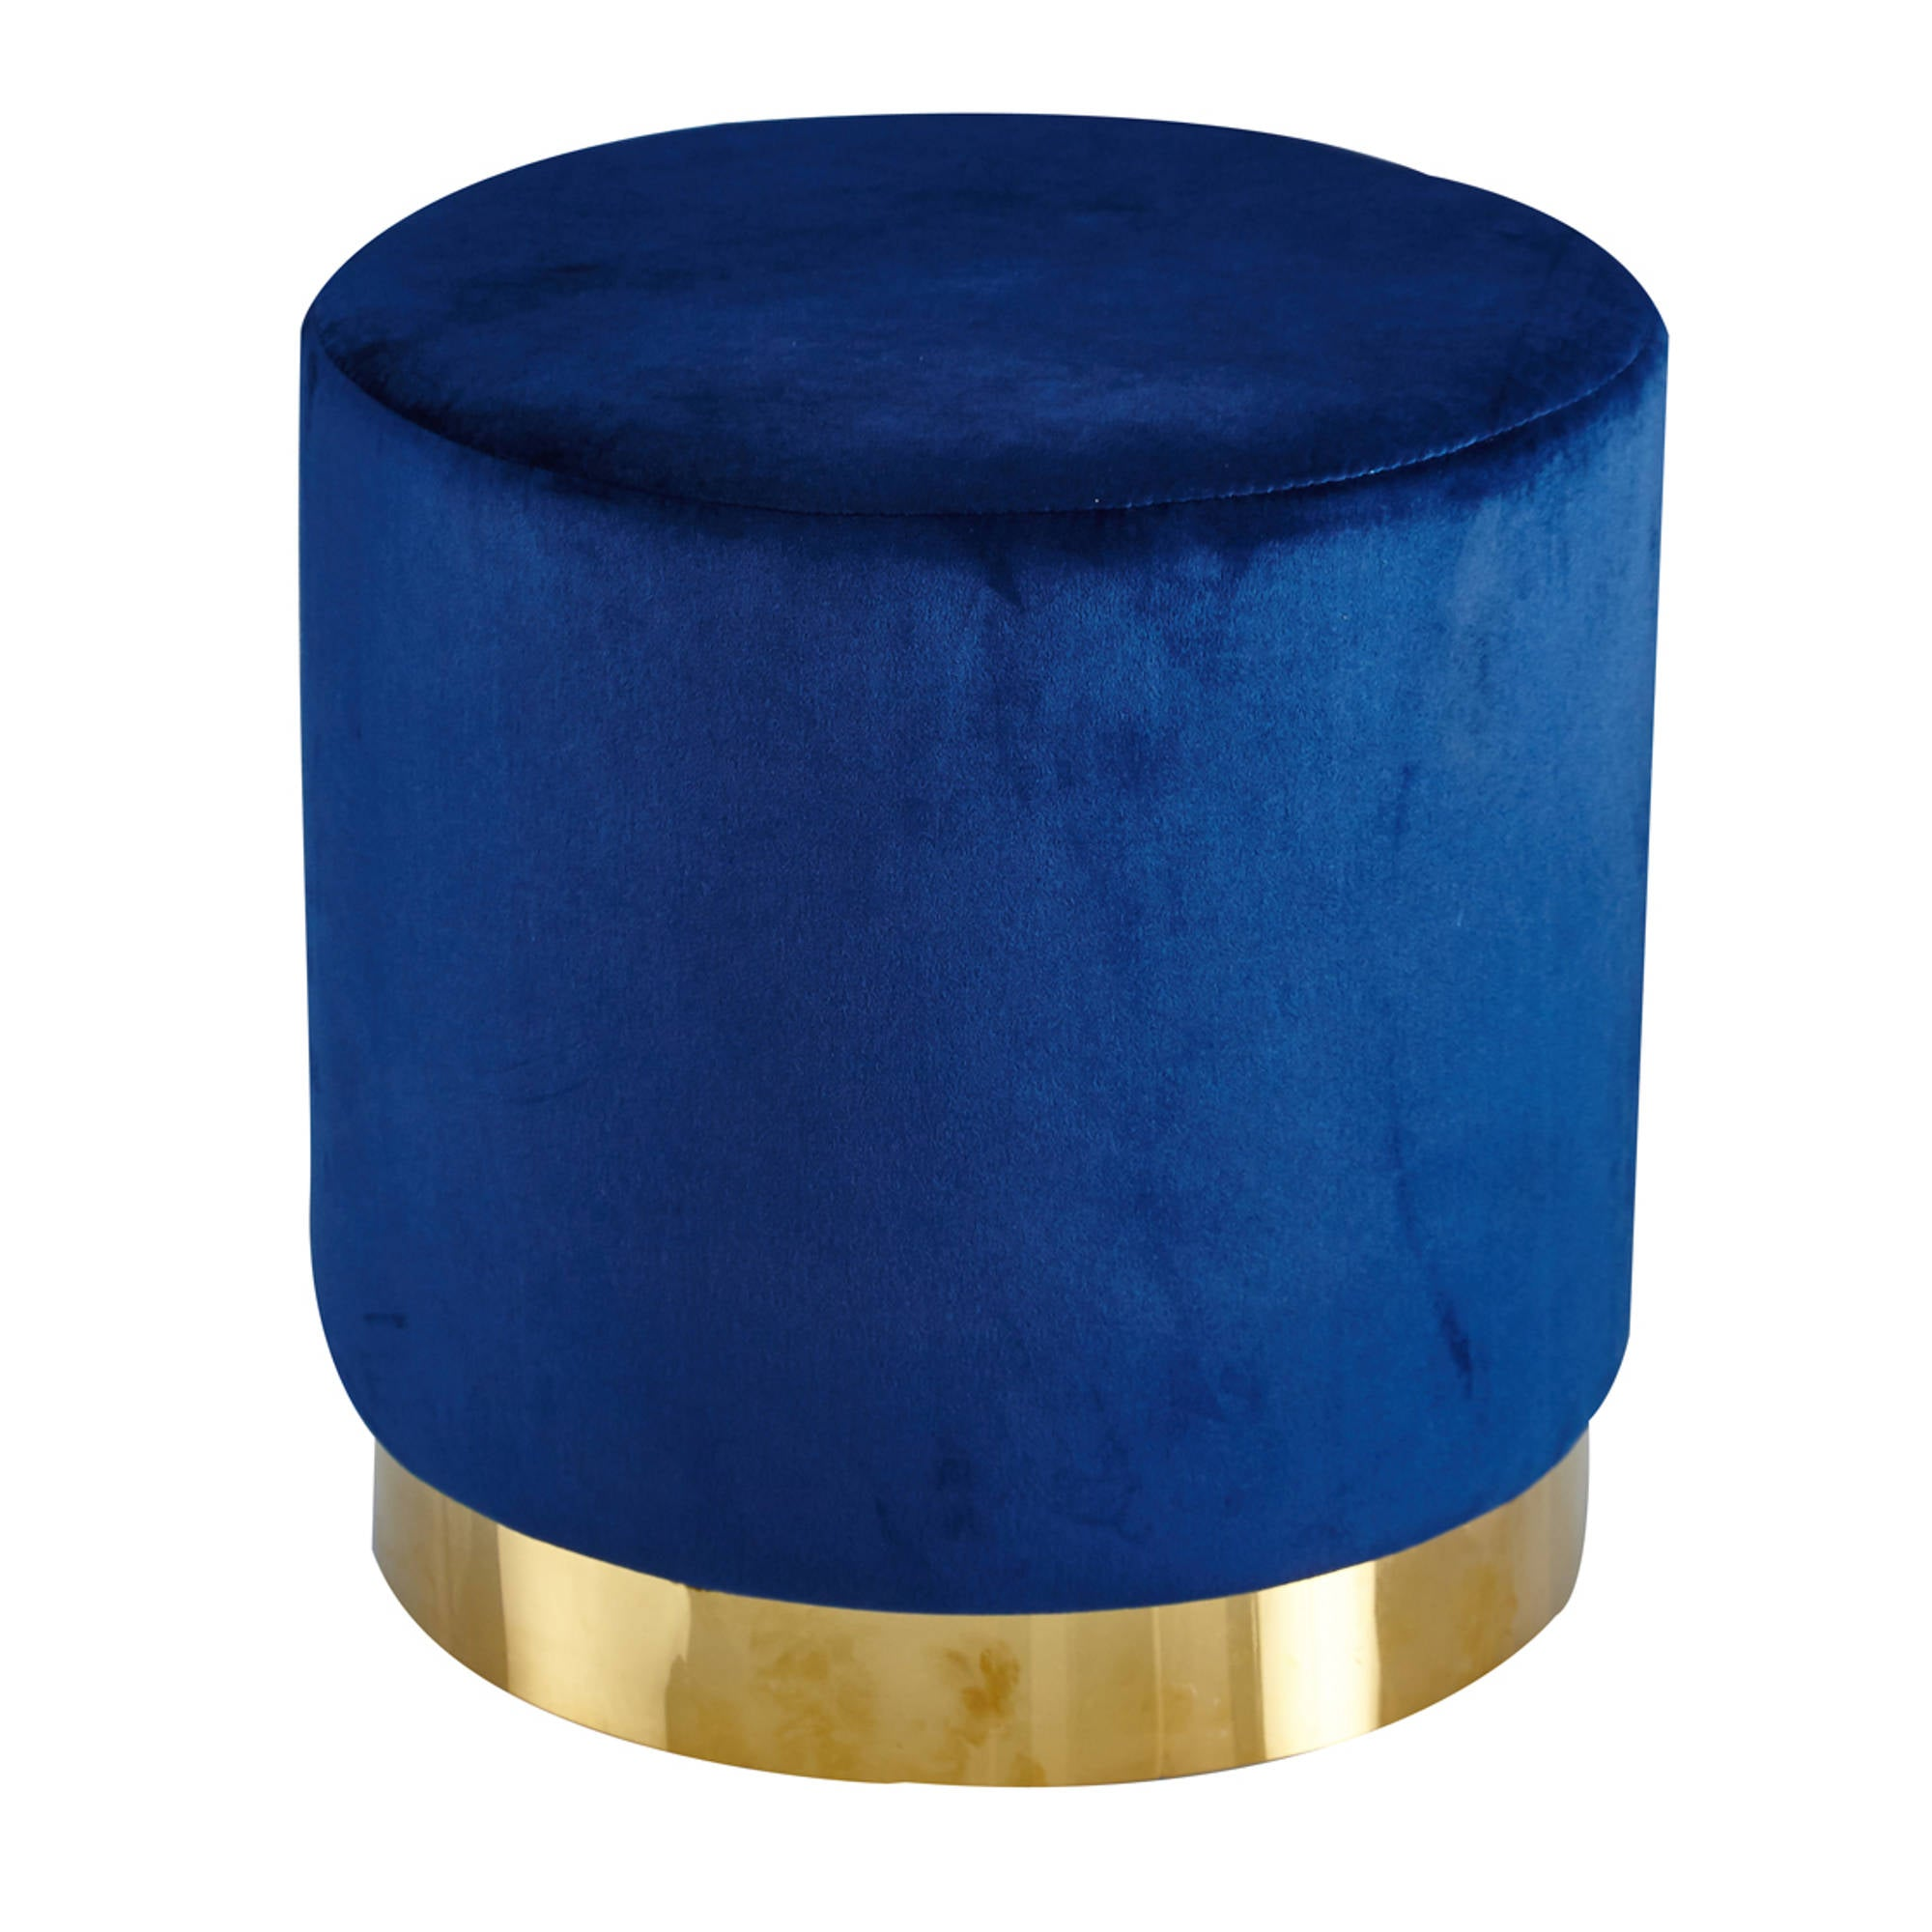 Lares Pouff in Royal Blue - Ezzo